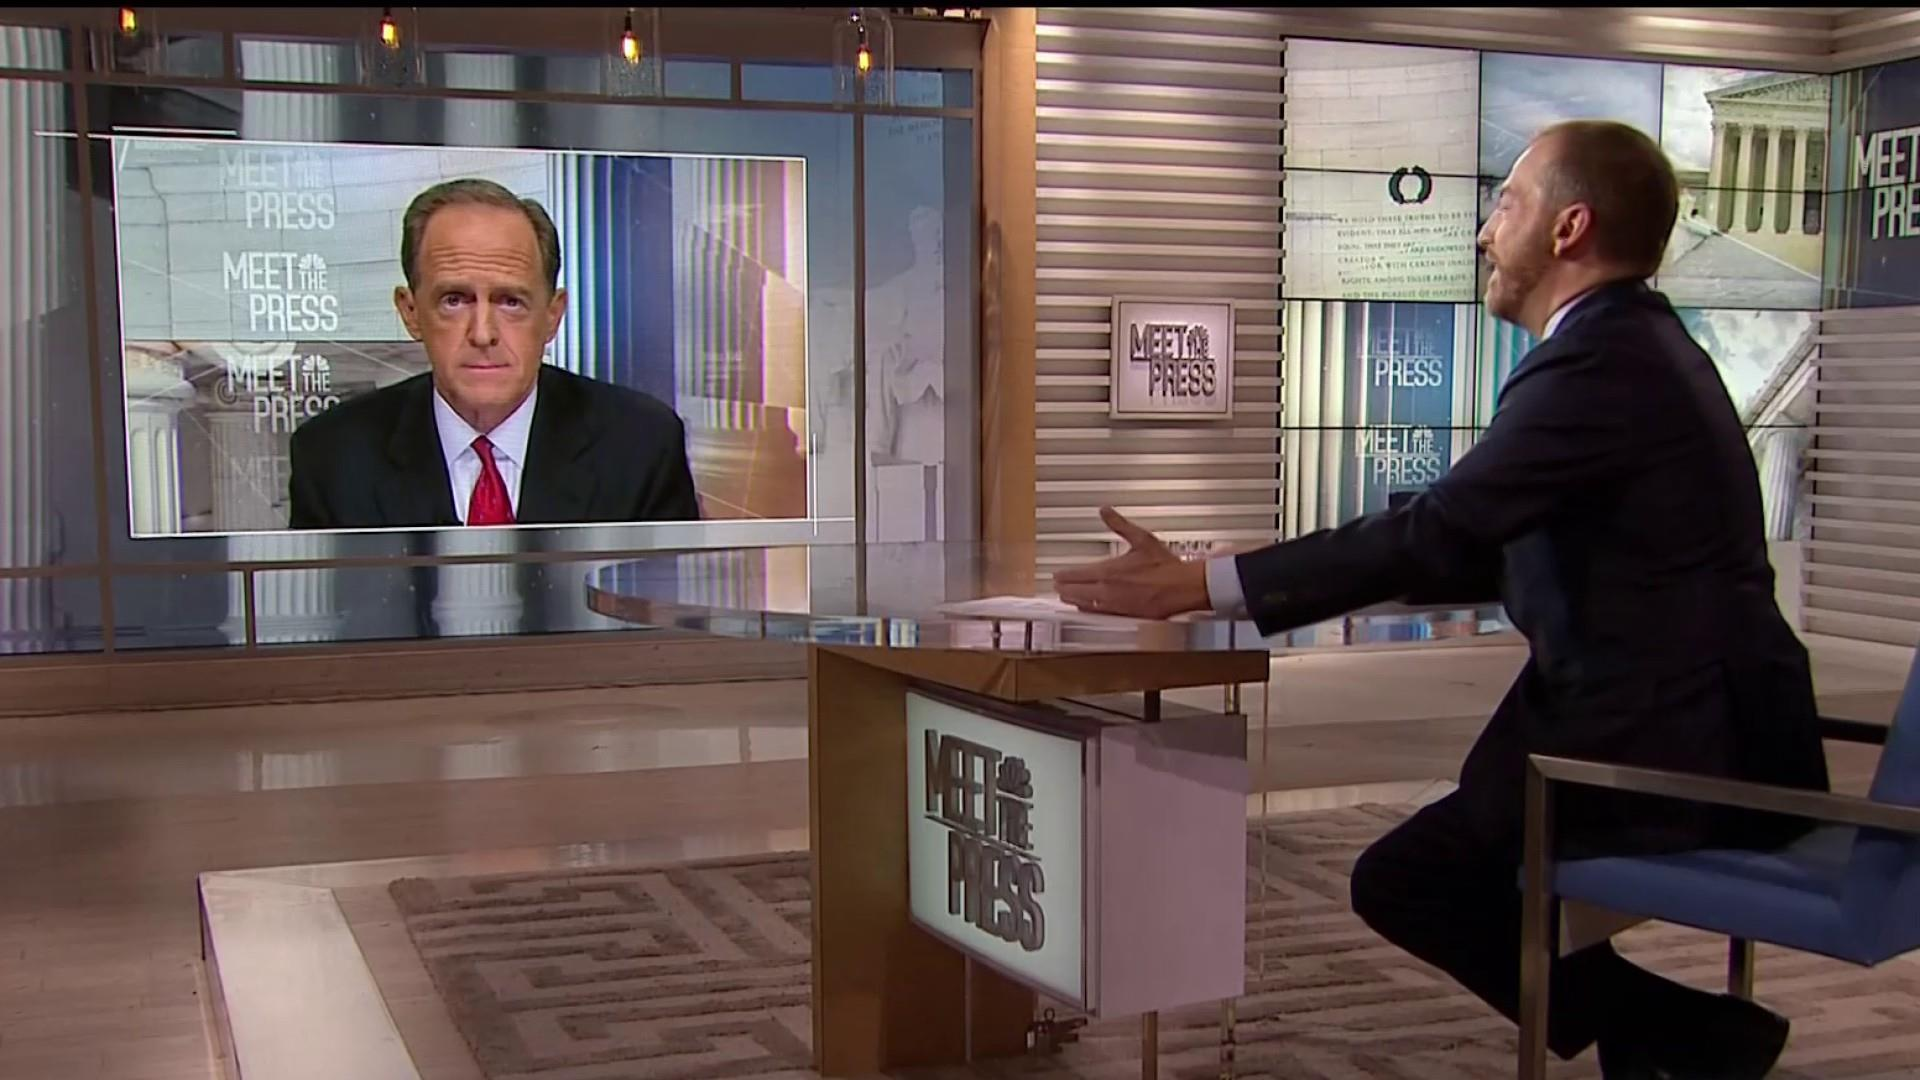 Toomey on guns: 'Beto O'Rourke is not helping'